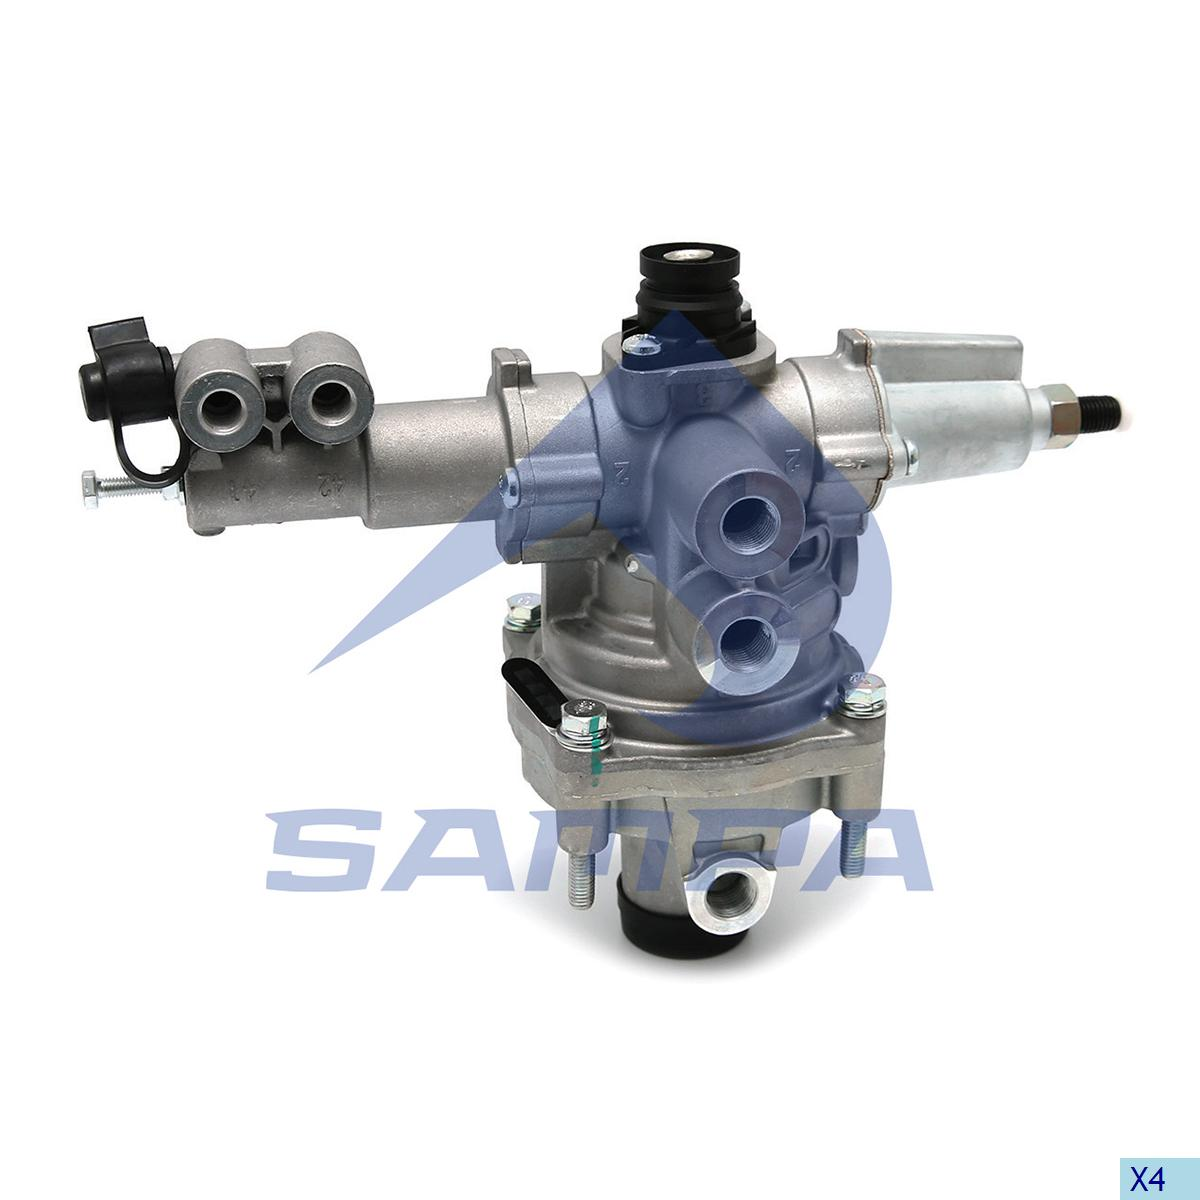 Brake Pressure Regulator, Man, Compressed Air System